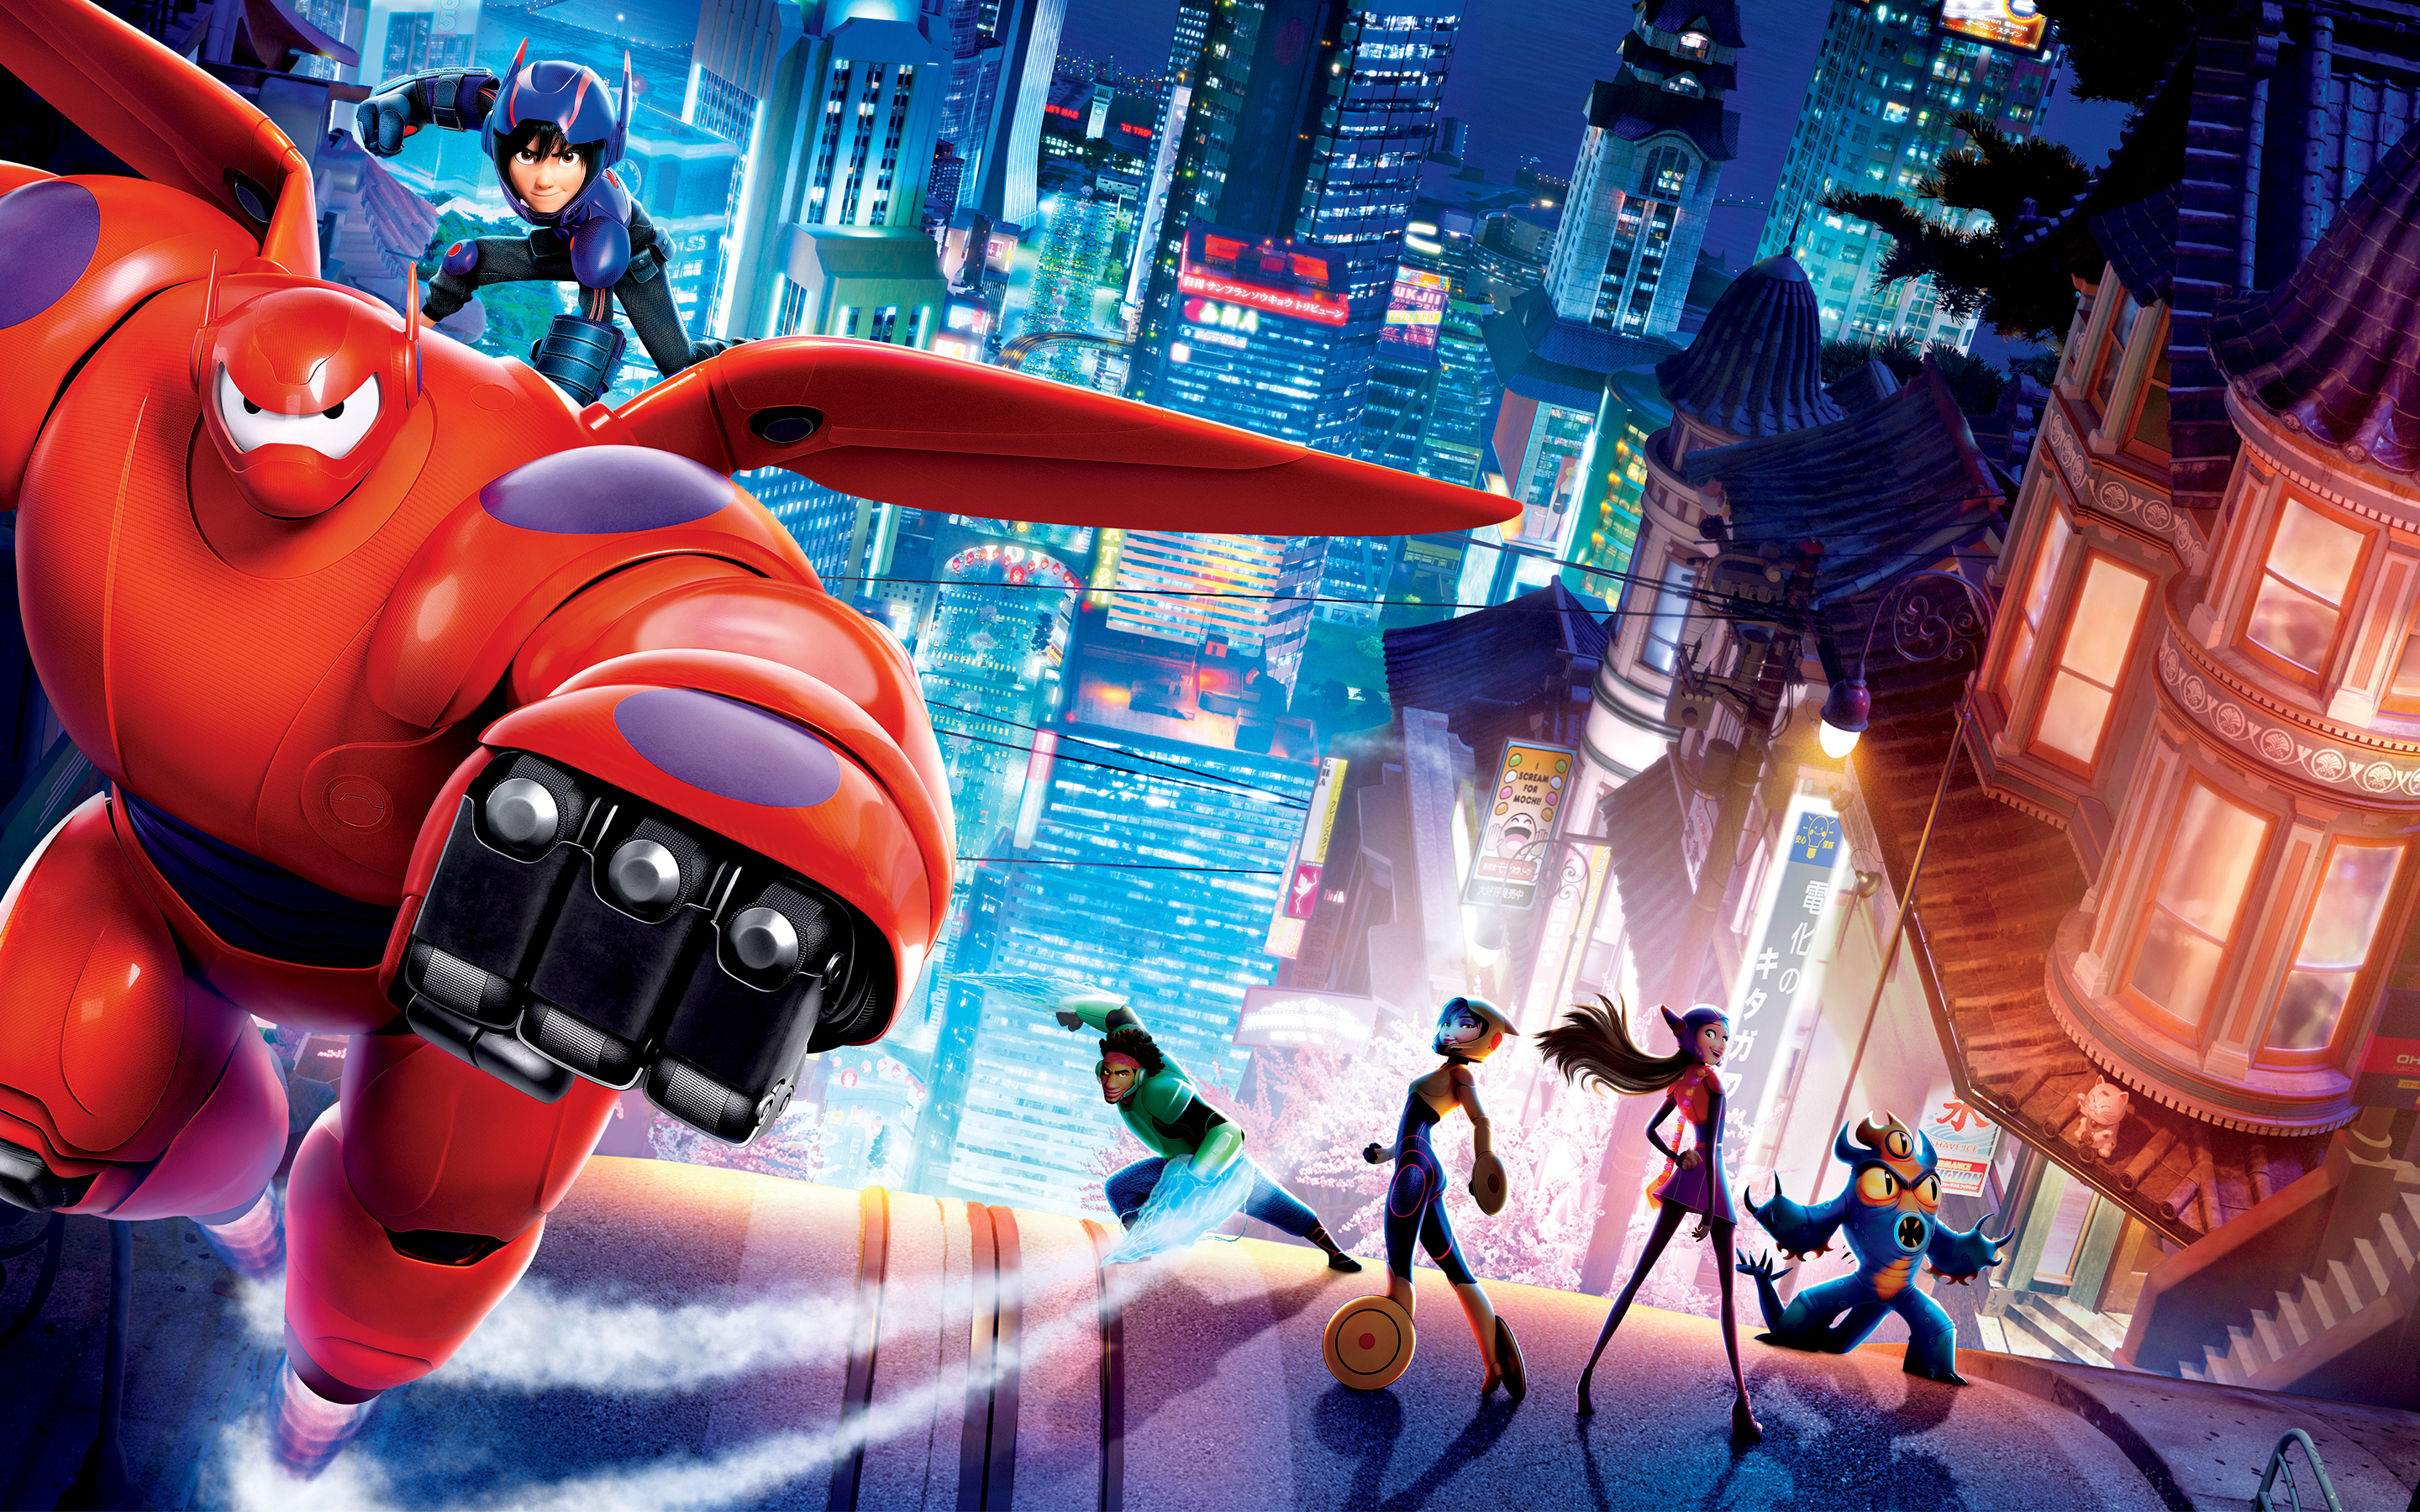 Awesome Big Hero 6 Wallpaper 46280 2880x1800px 2880x1800